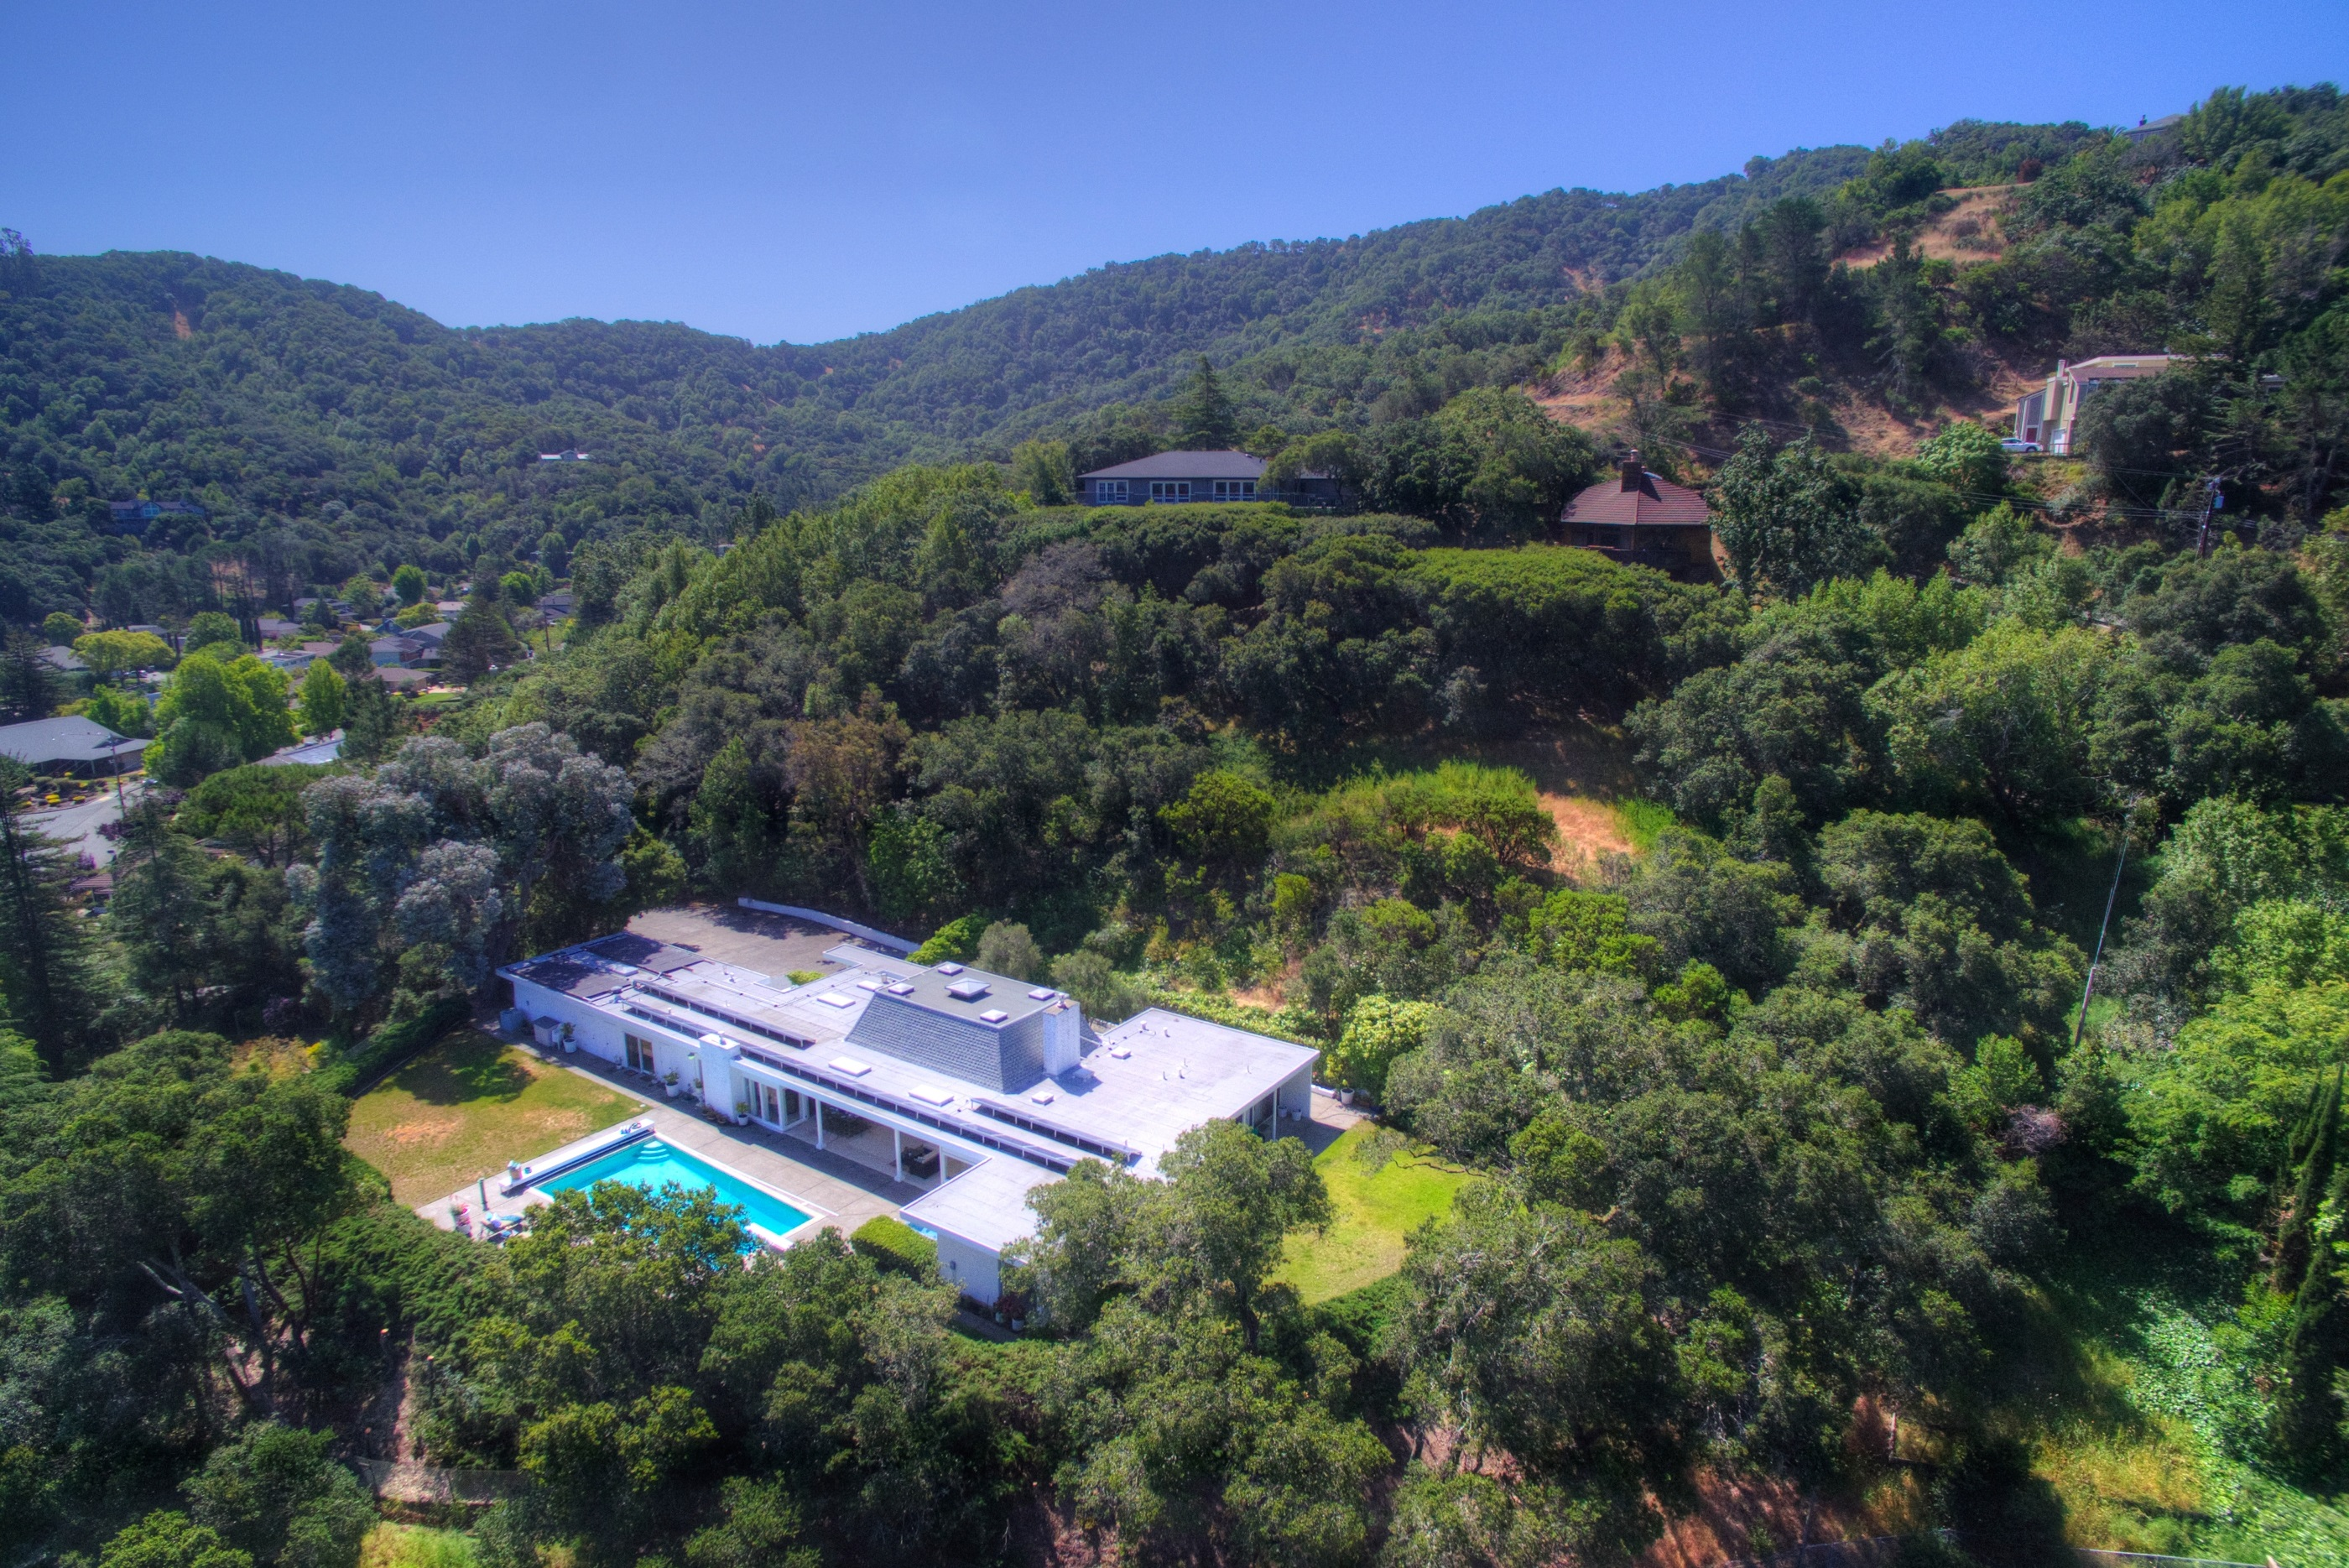 Single Family Home for Sale at One of a Kind Marin Golf and Country Club 6 Carnoustie Drive Novato, California, 94949 United States